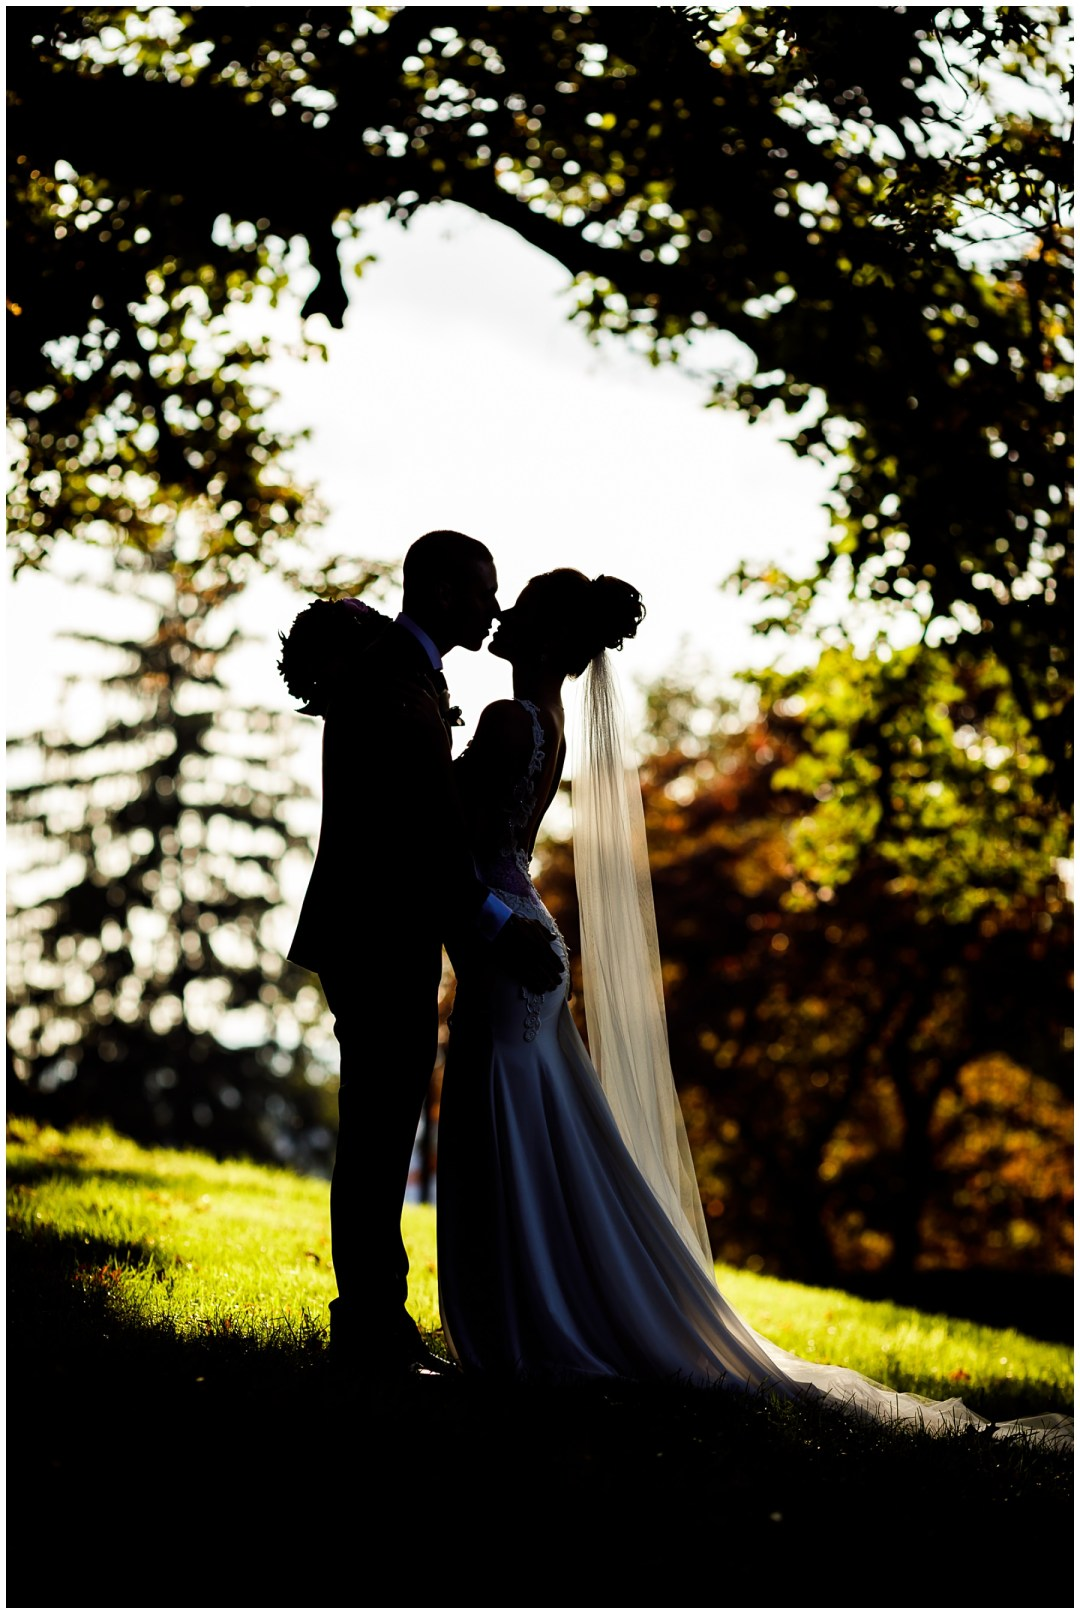 silhouette of wedding couple agains fall scenery